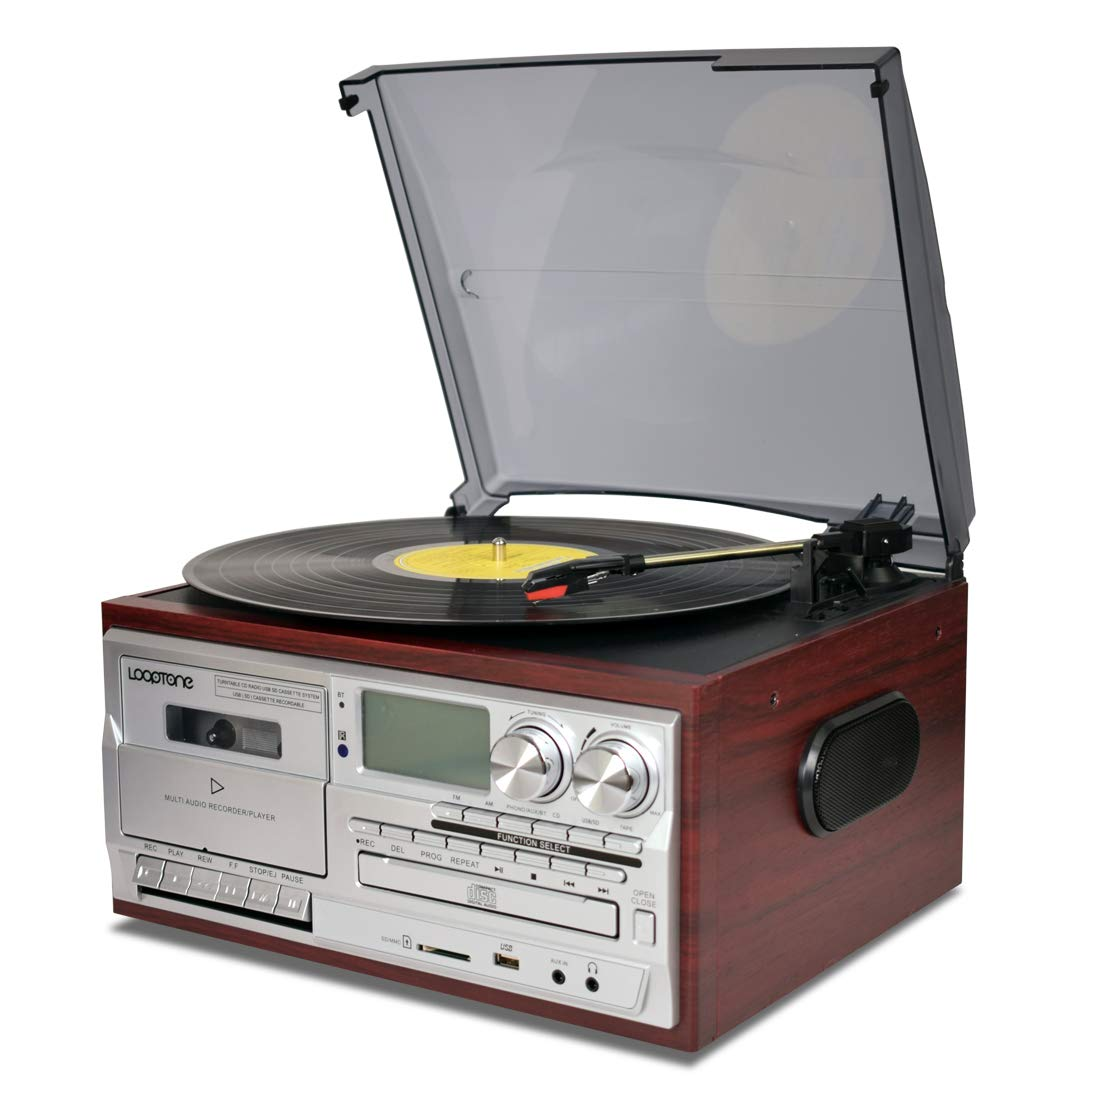 LoopTone Vinyl Record Player 9 in 1 3 Speed Bluetooth Vintage Turntable CD Cassette Player AM/FM Radio USB Recorder Aux-in RCA Line-Out by LoopTone